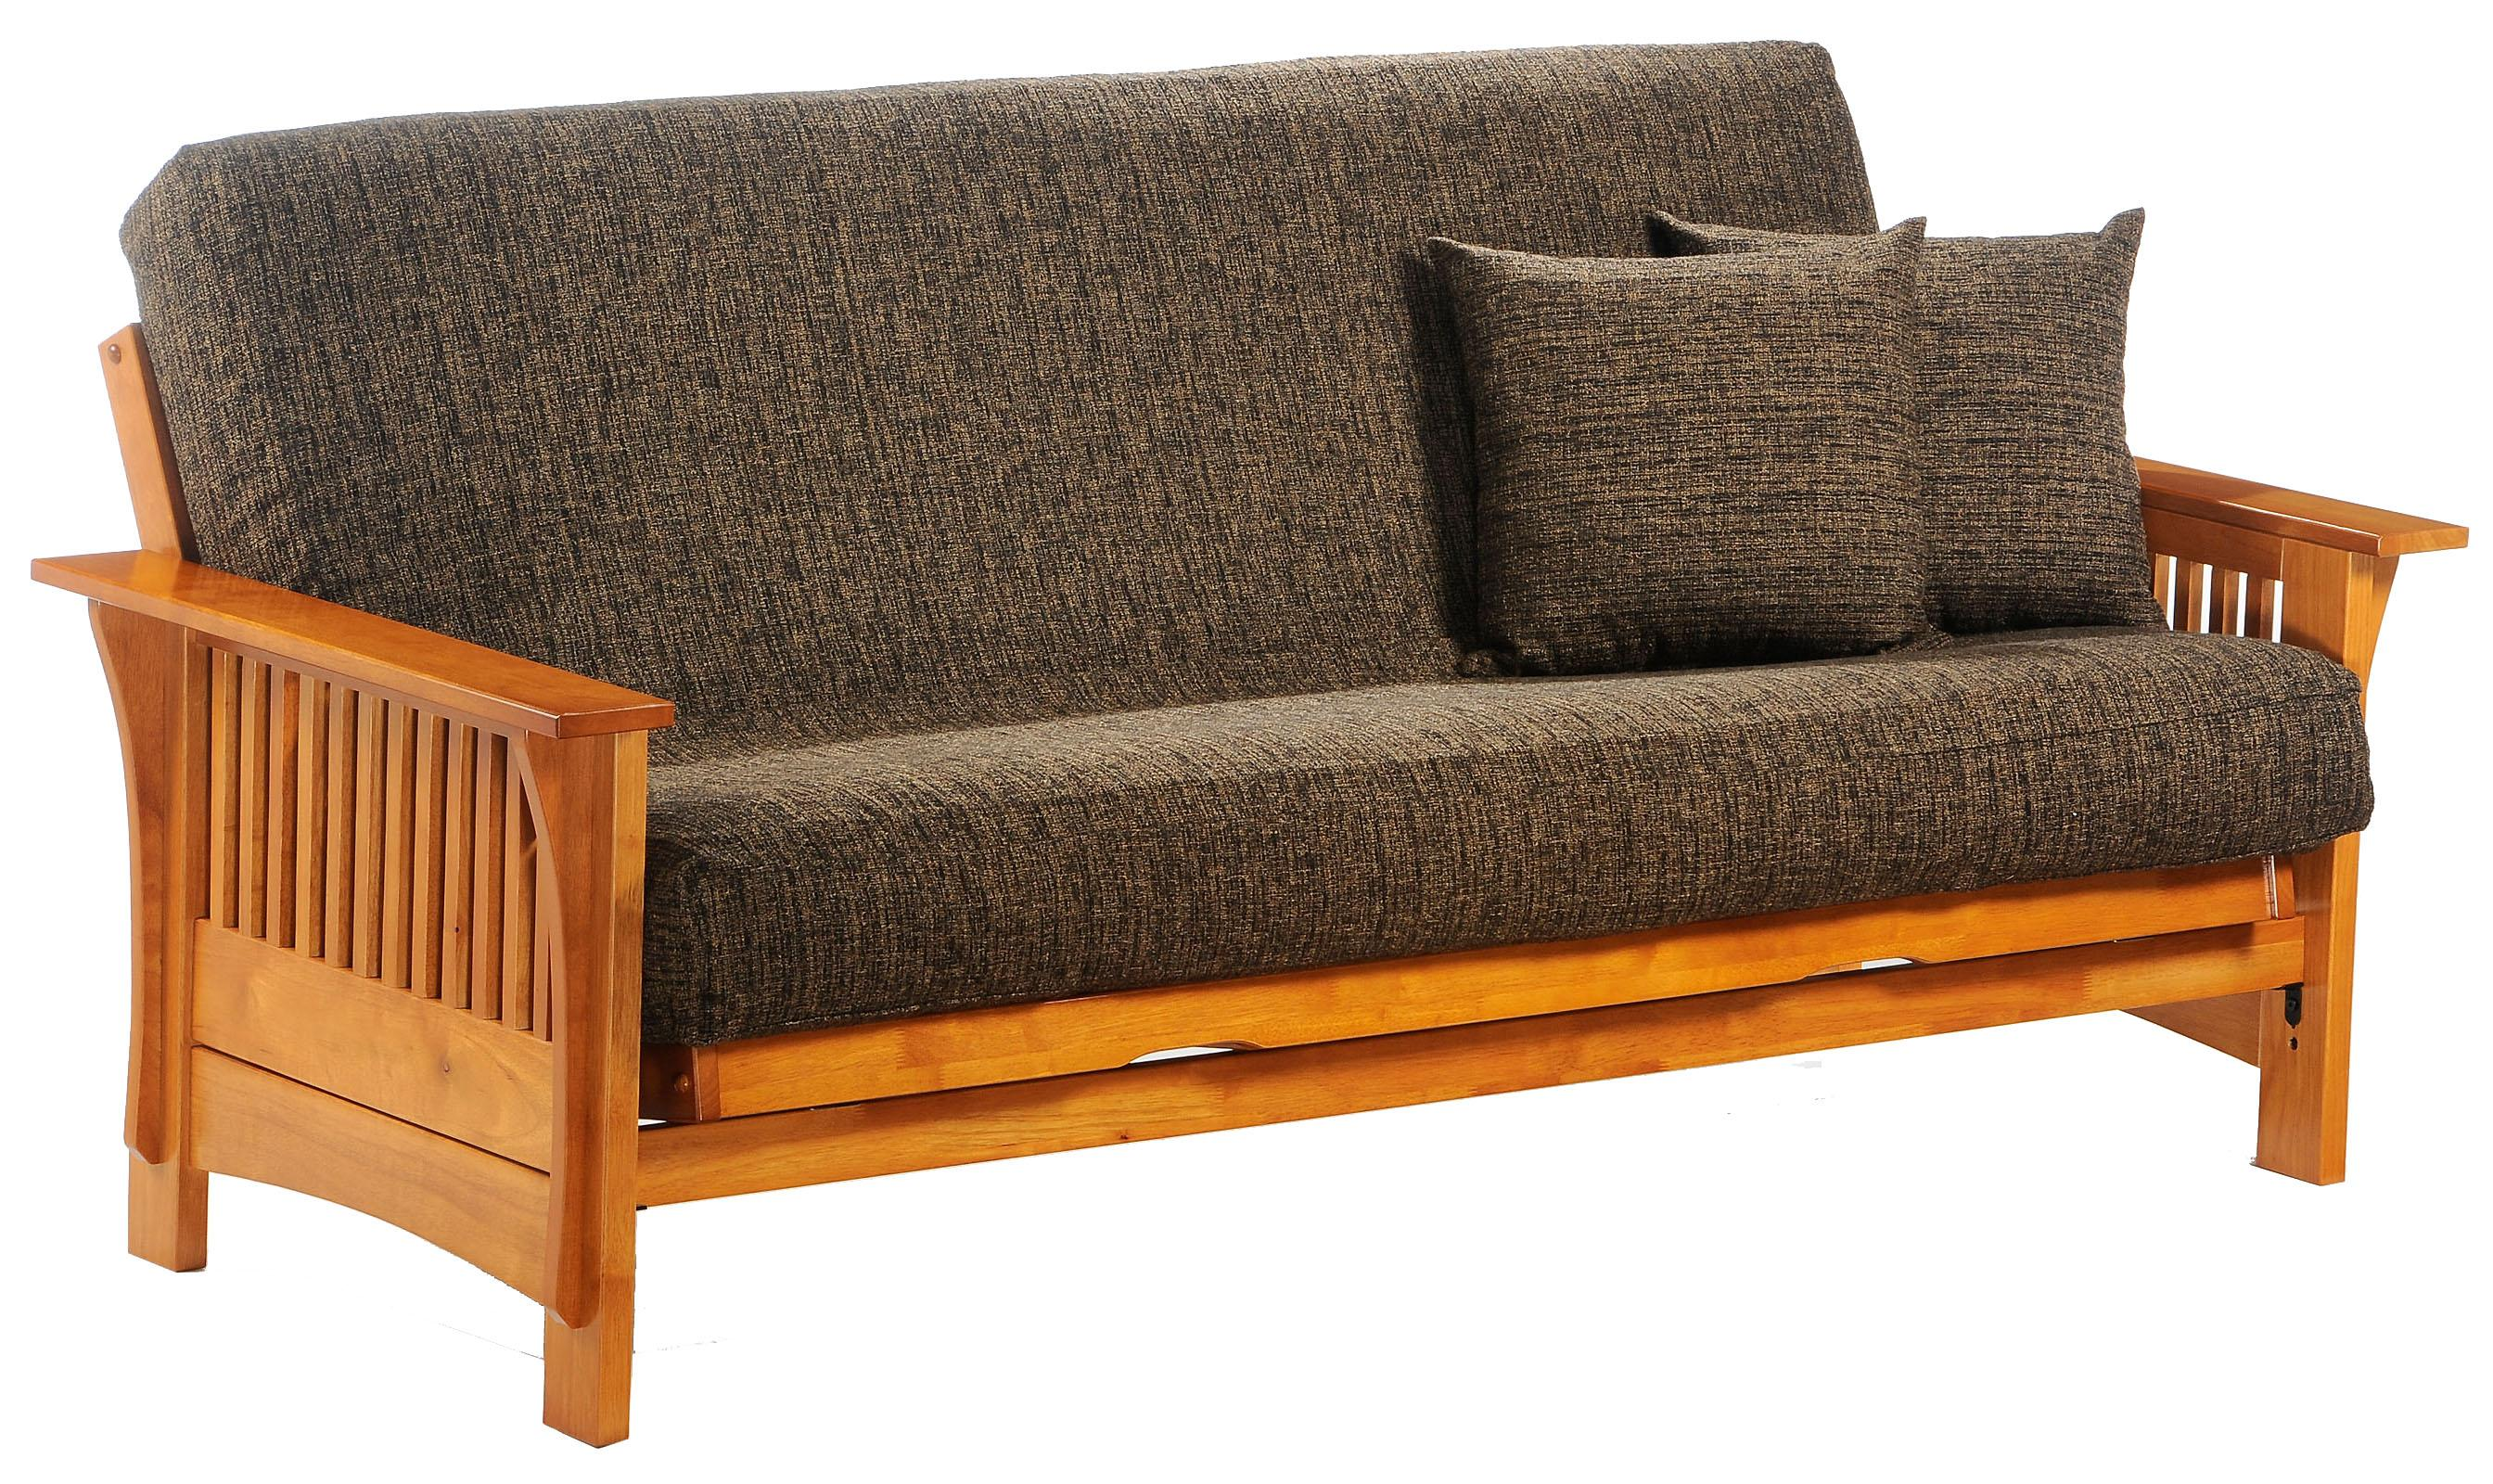 Autumn Honey Oak Queen Size Futon by Night & Day Furniture at Furniture Superstore - Rochester, MN